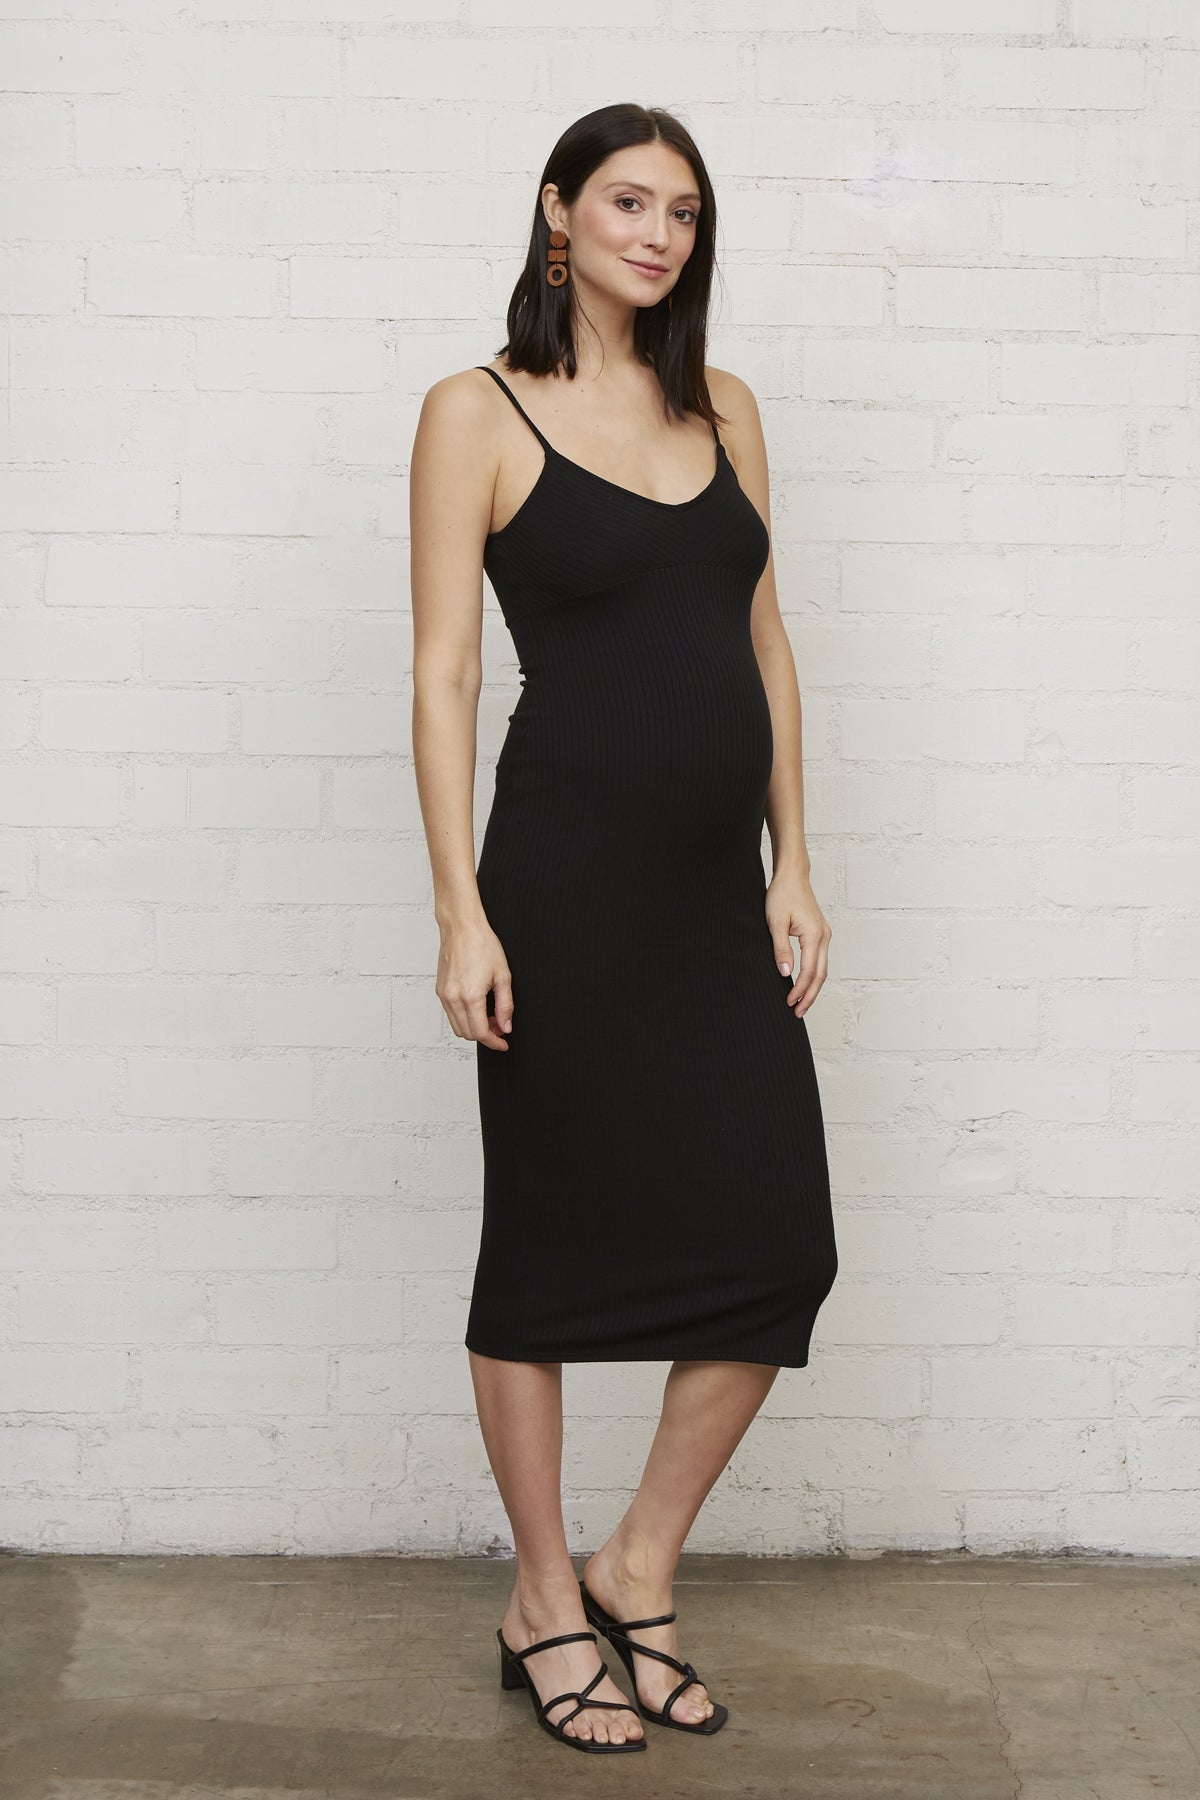 Rib Rochelle Dress - Black, Maternity